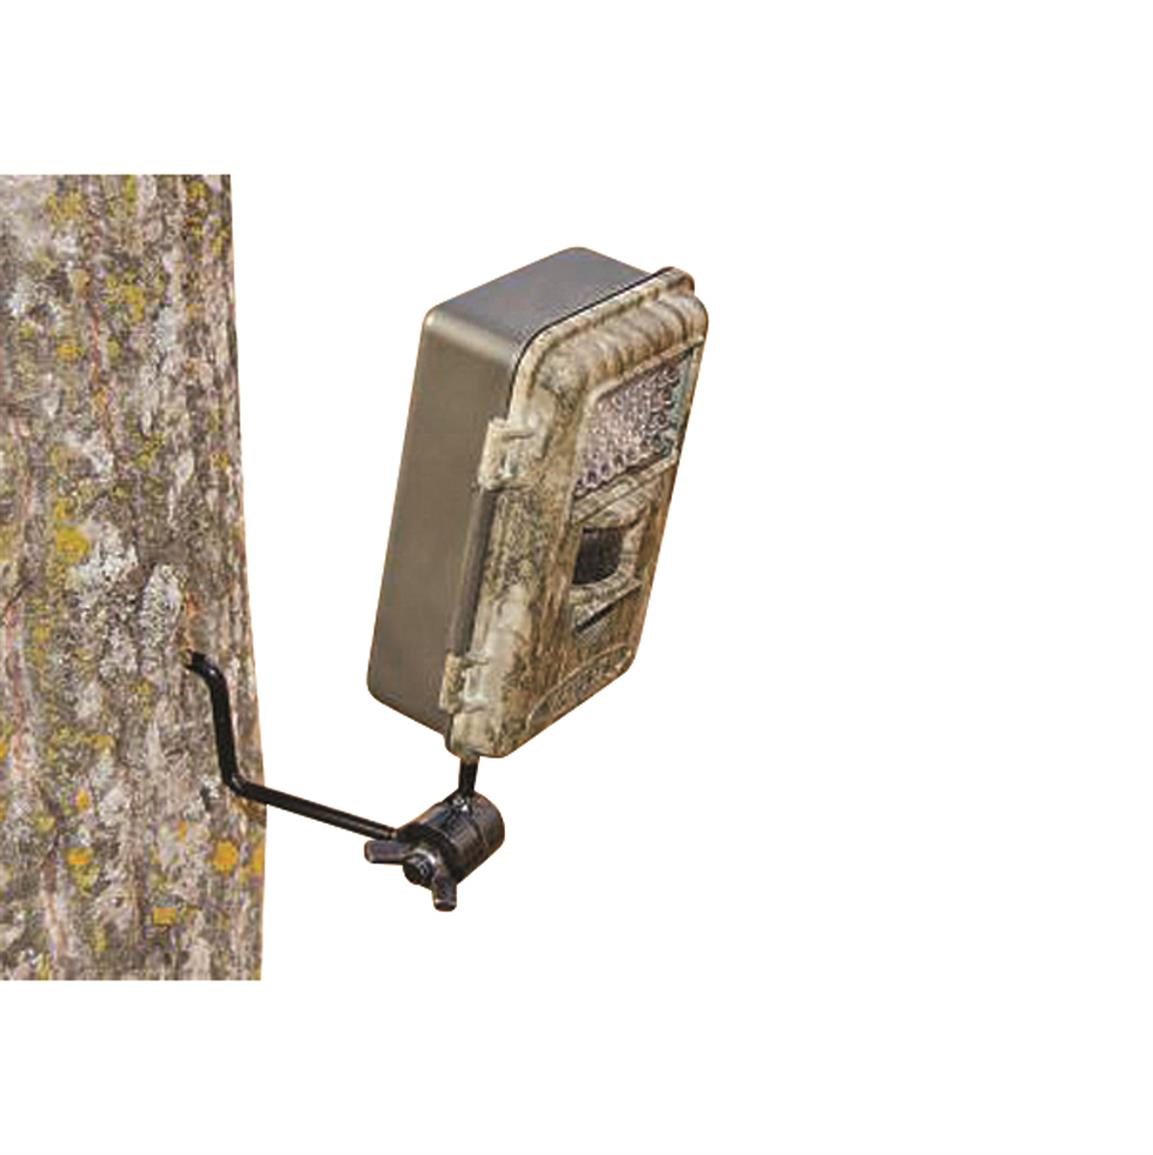 2-Pk. of HME™ Economy Trail Camera Tree Mounts